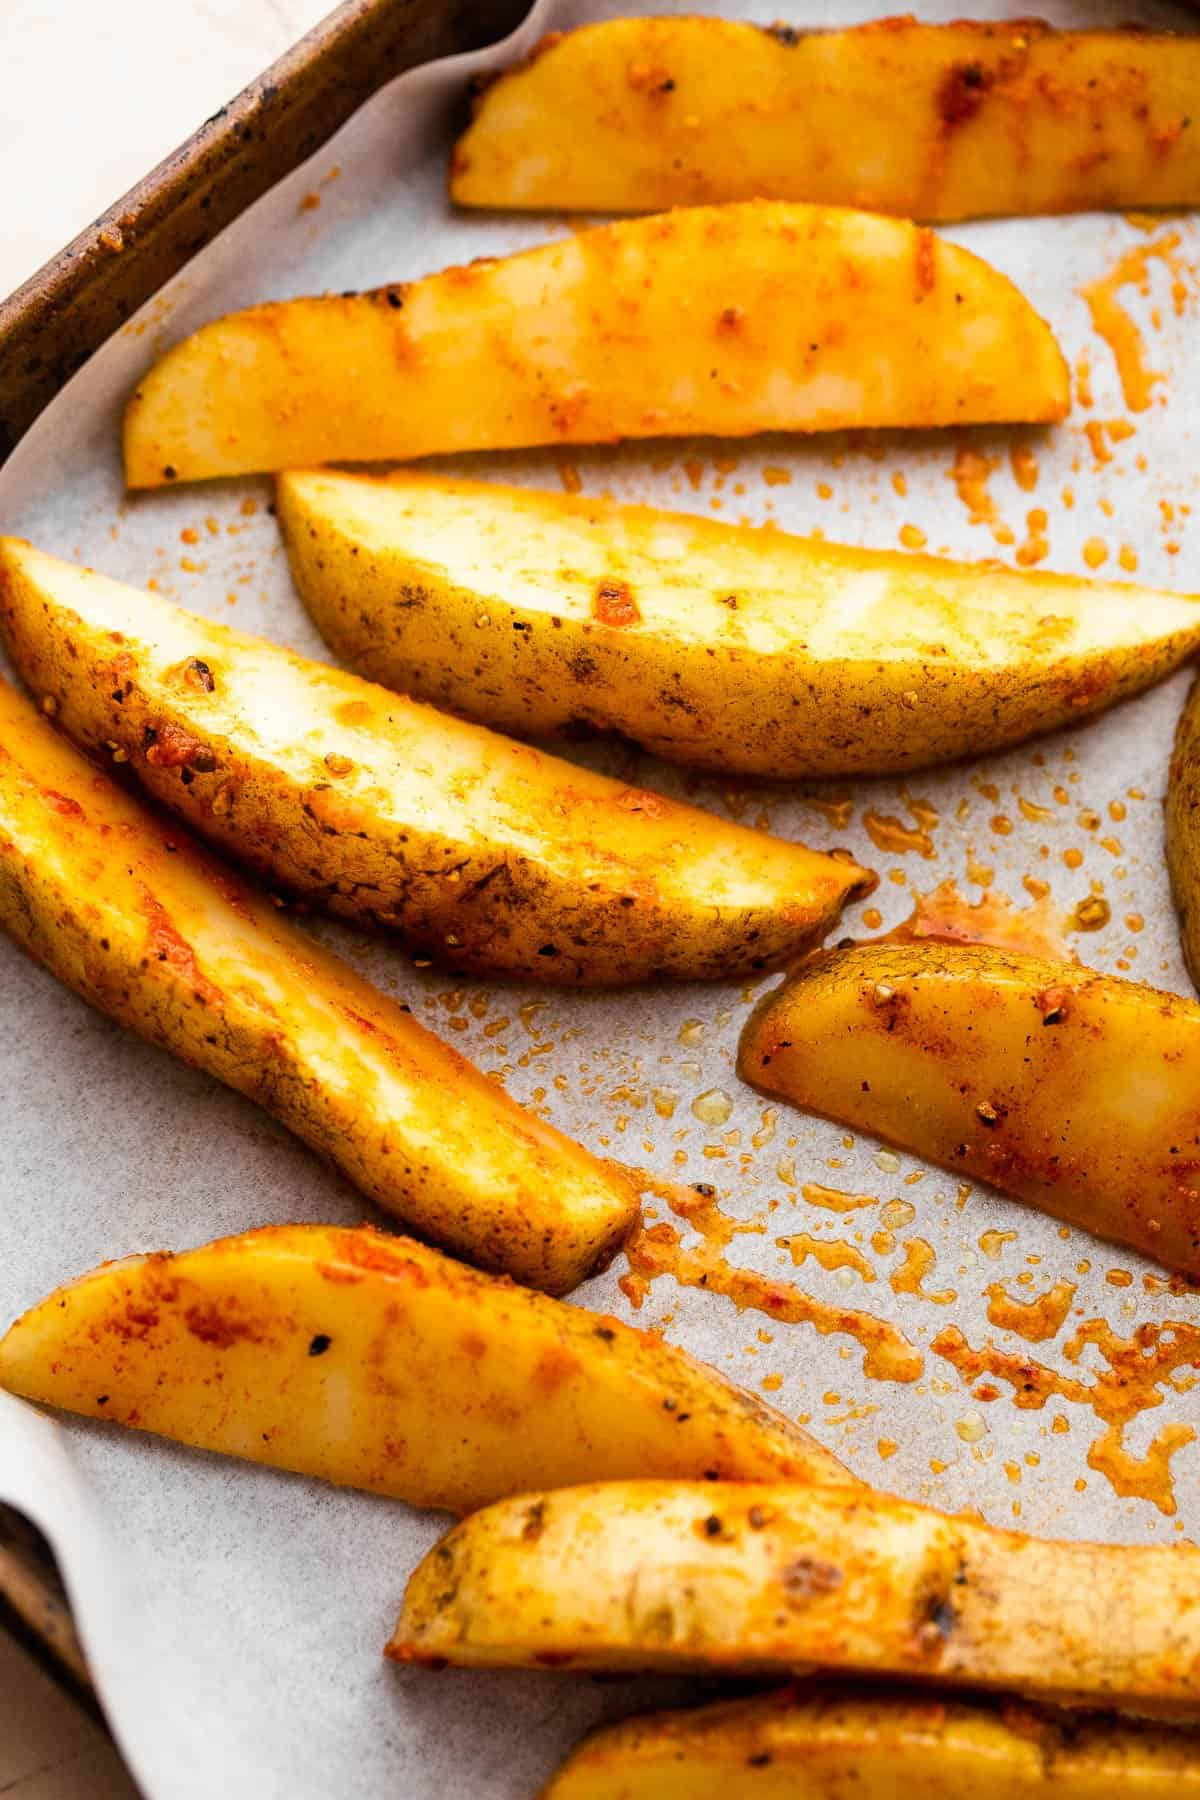 raw and seasoned russet potato wedges arranged on a sheet pan covered with parchment paper